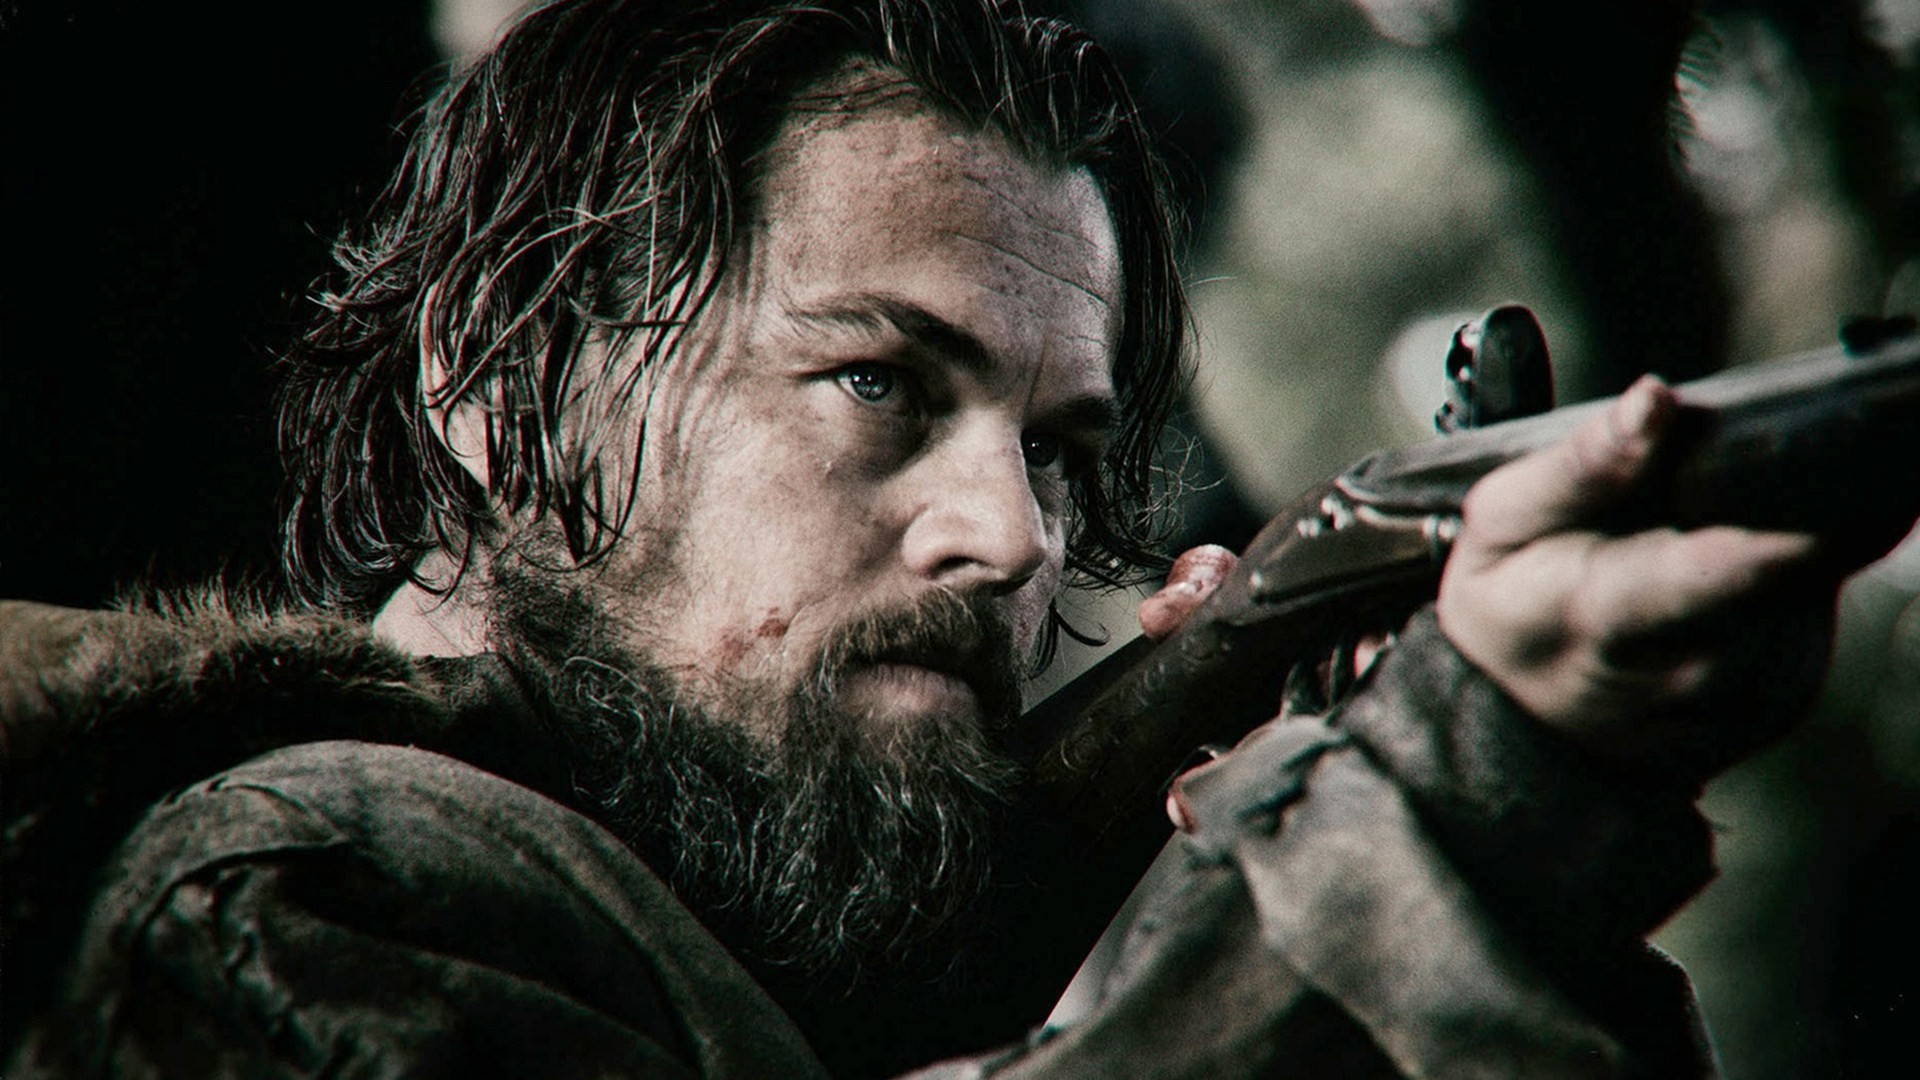 RUMORS OF CANNIBALISM ON THE REVENANT SHOOT